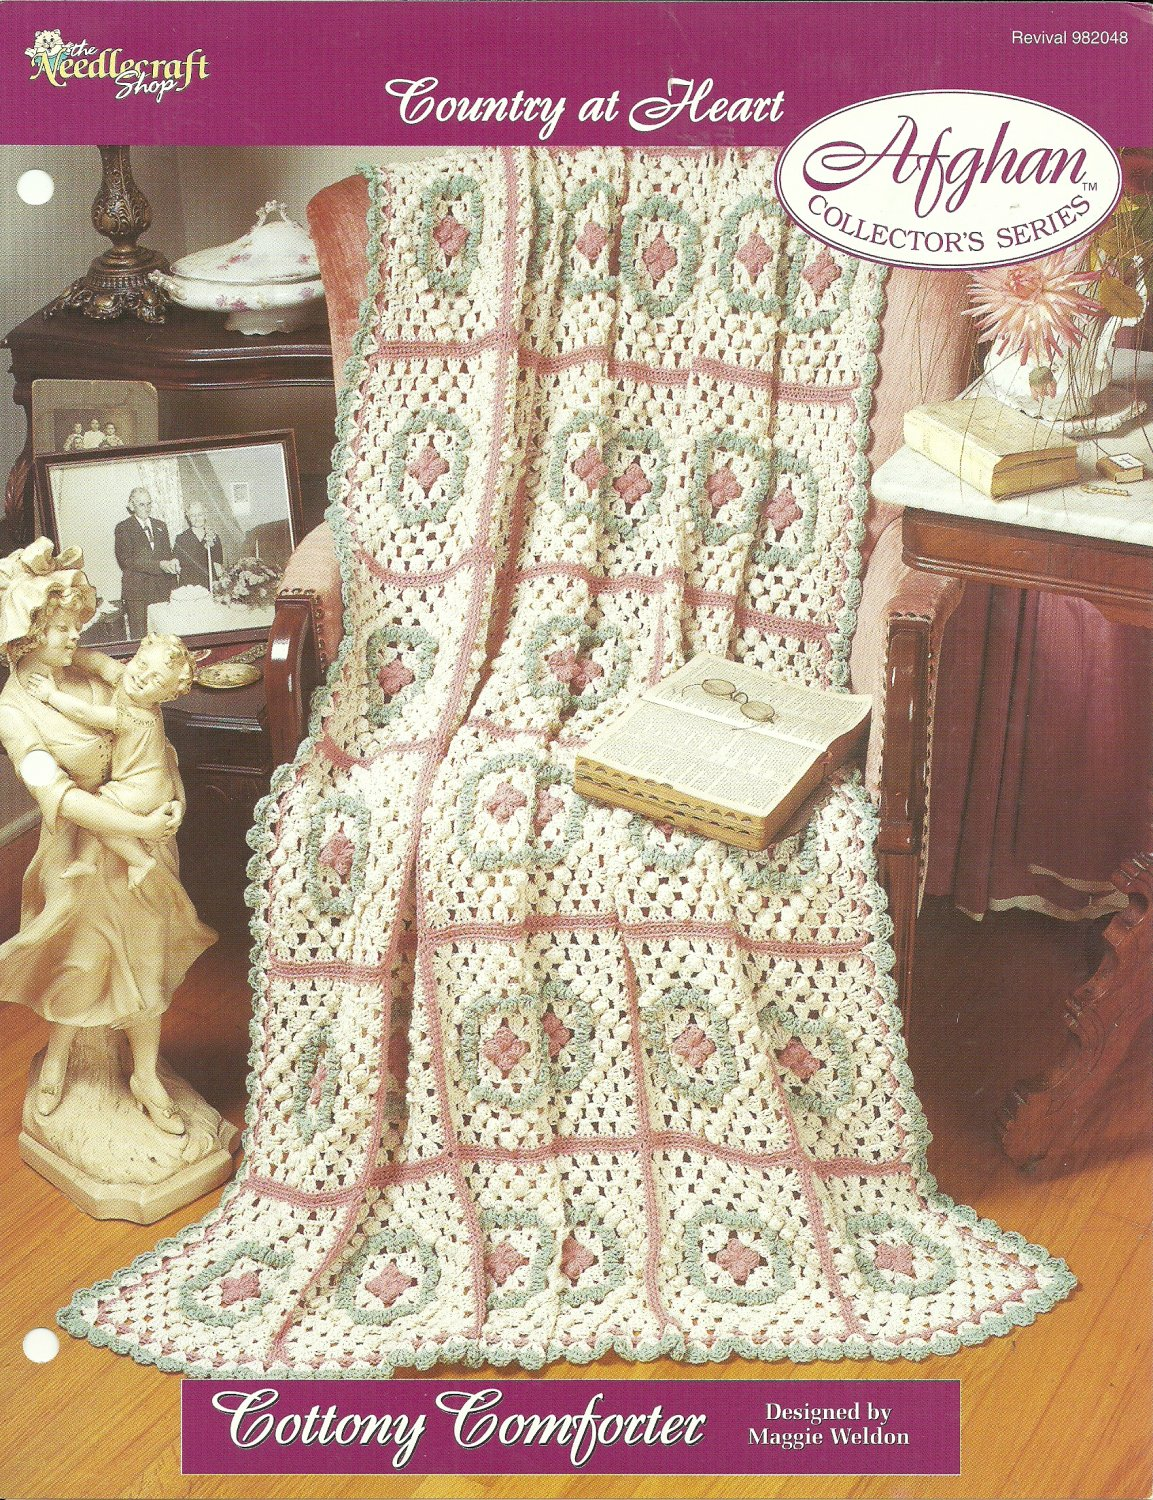 *Crochet Afghan Collector's Series - Cottony Comforter